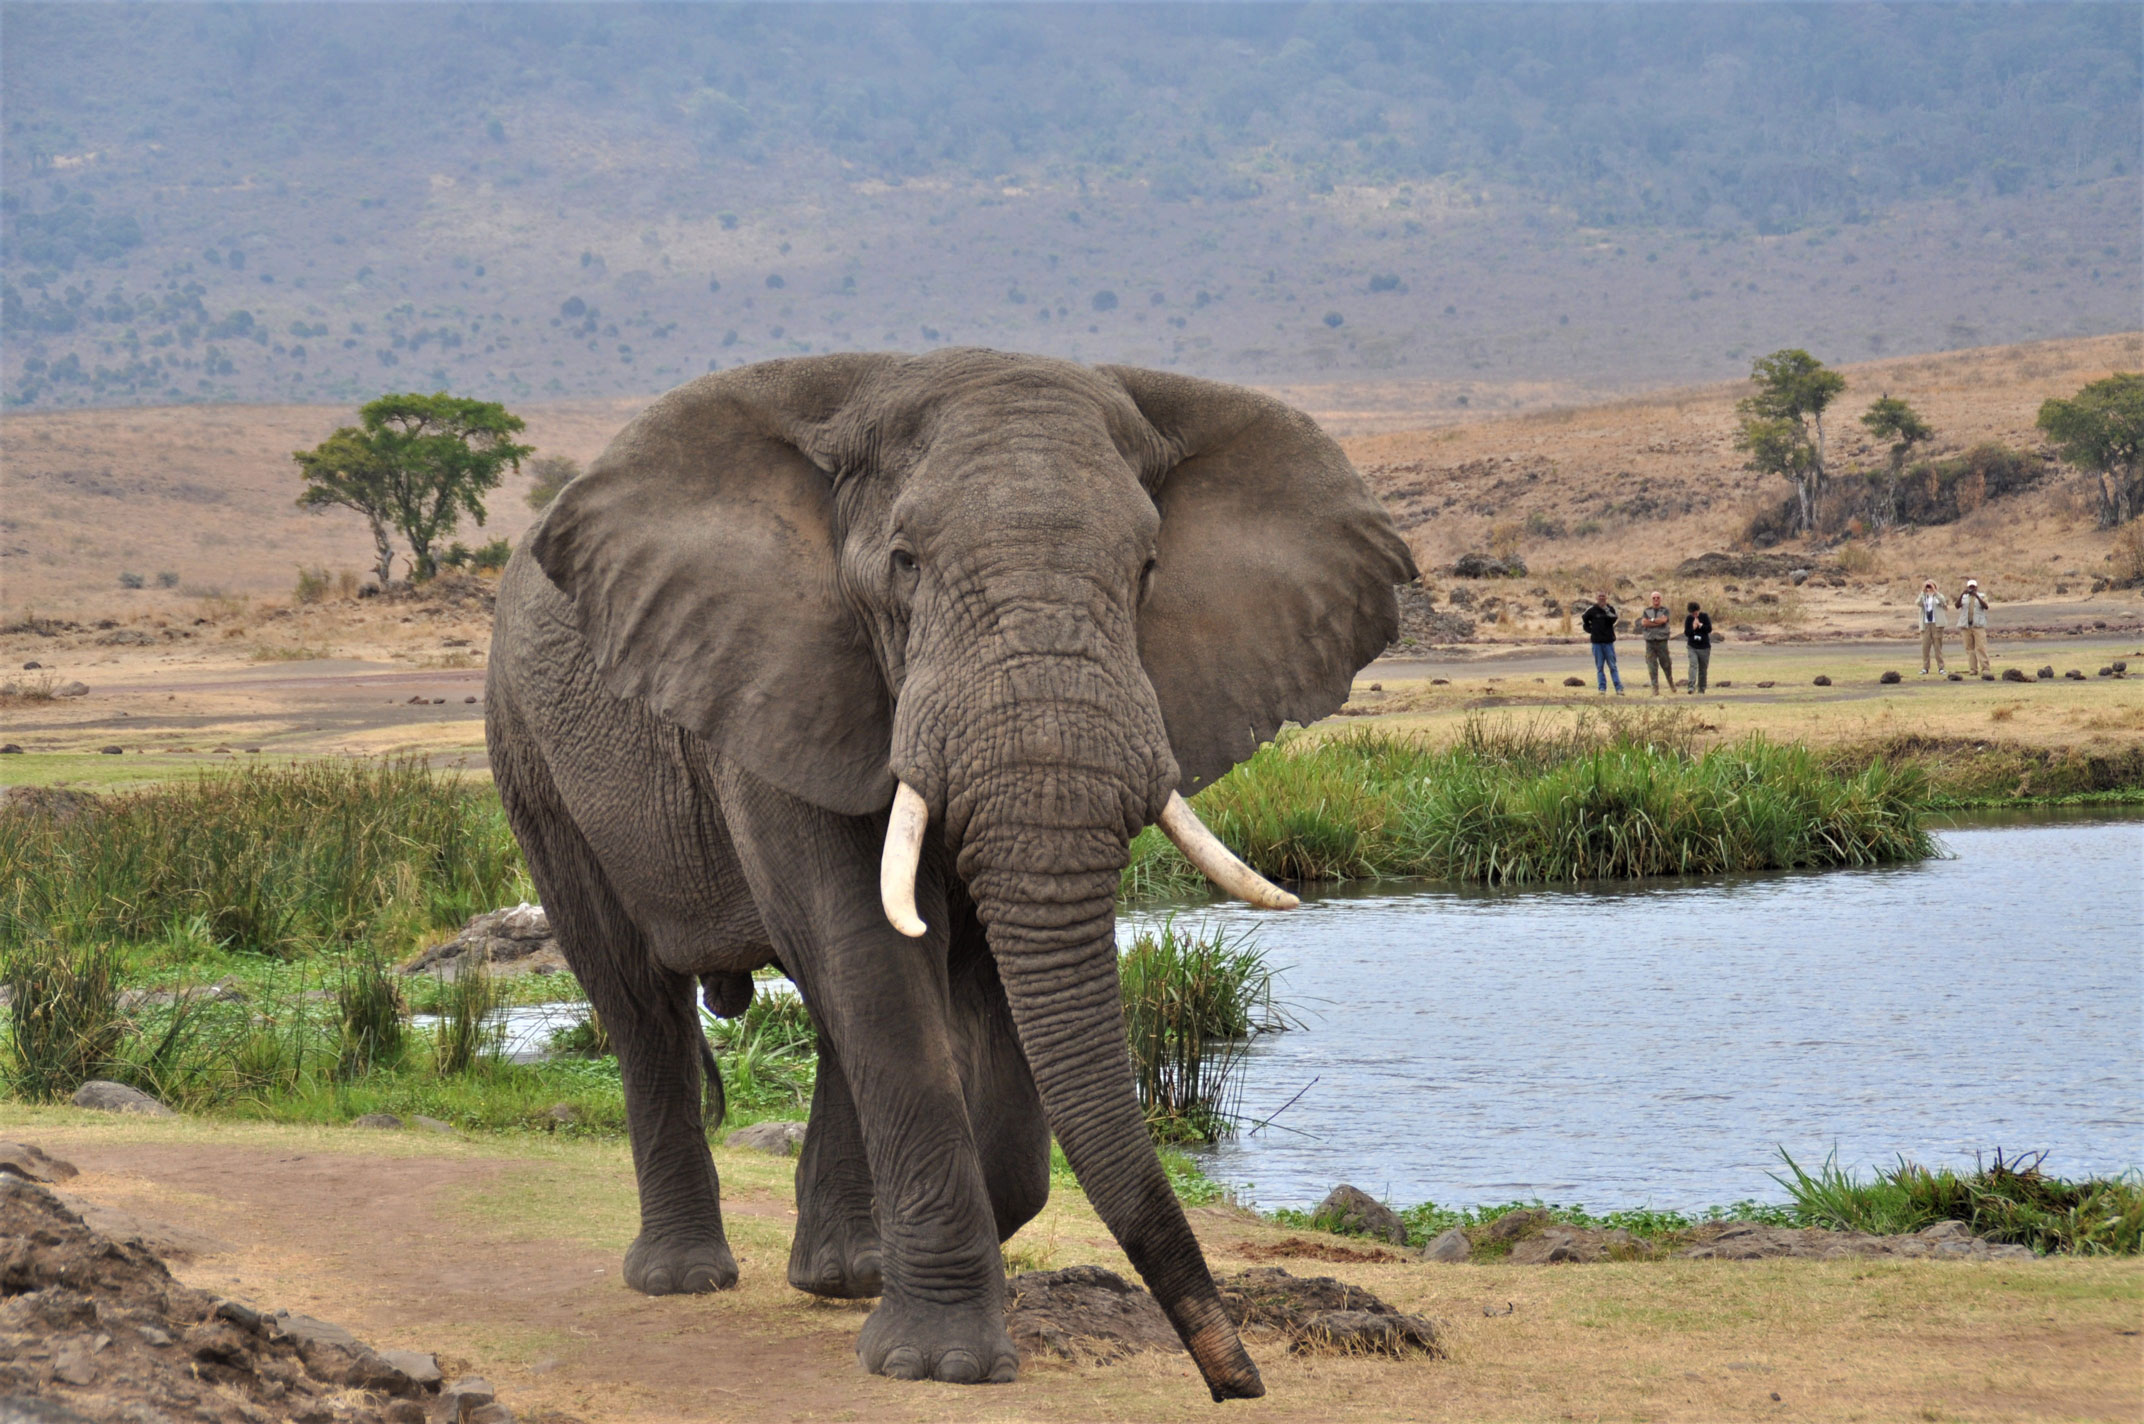 Elephant in Queen Elizabeth National park